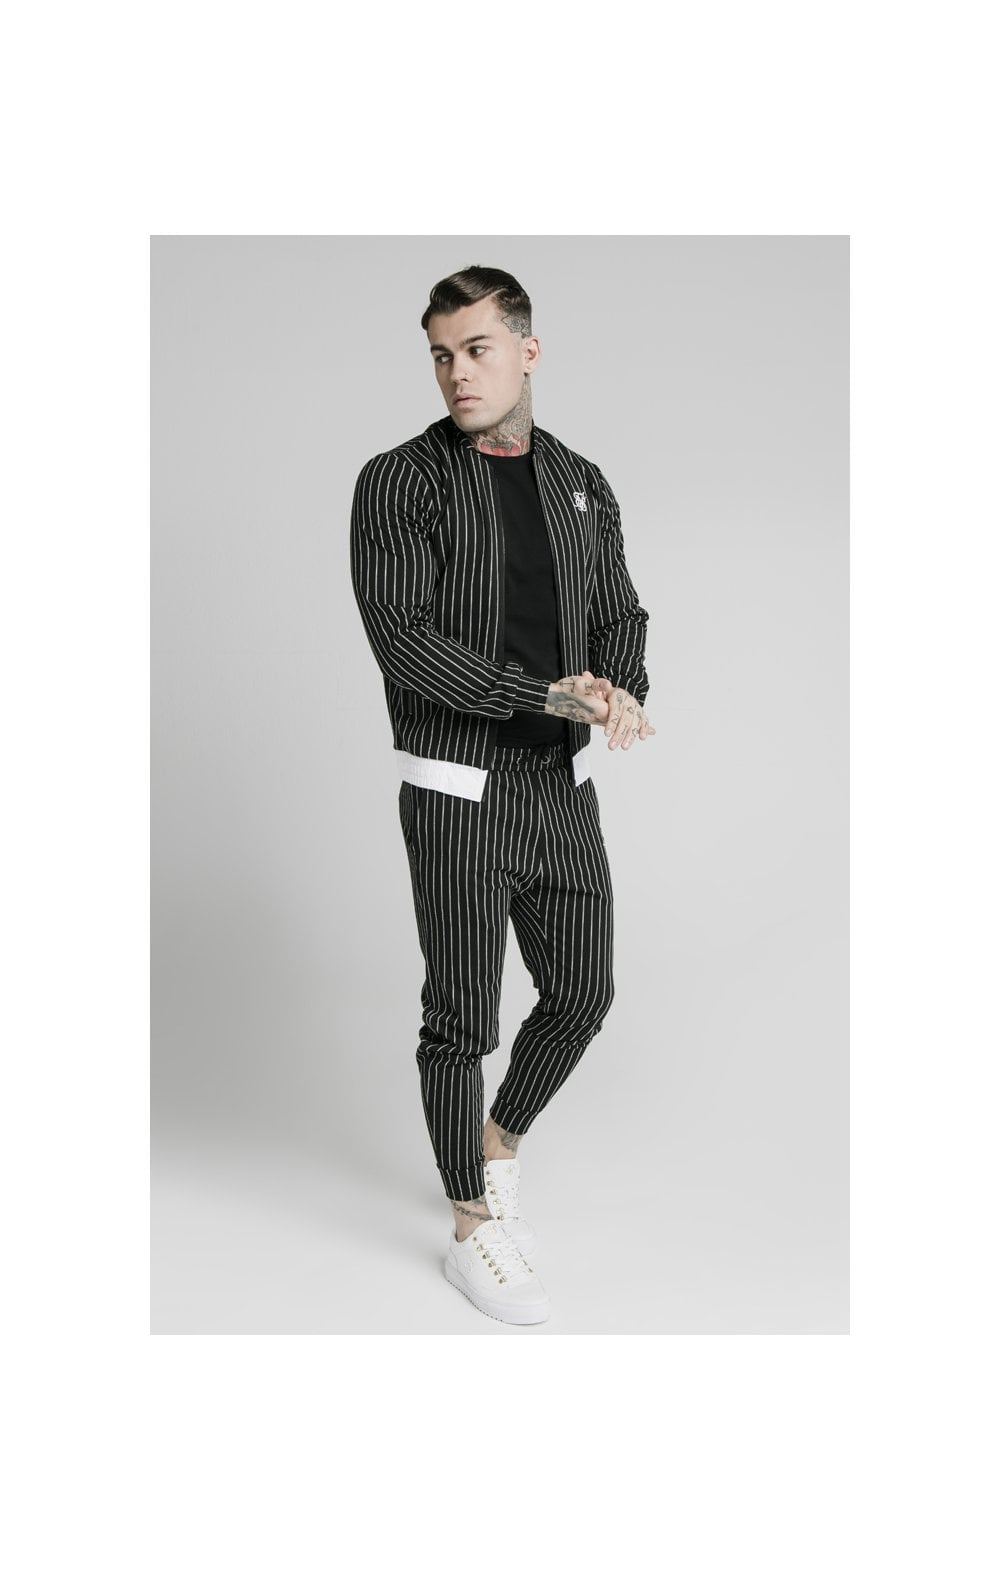 SikSilk Pinstripe Cuff Pants - Black & White (2)